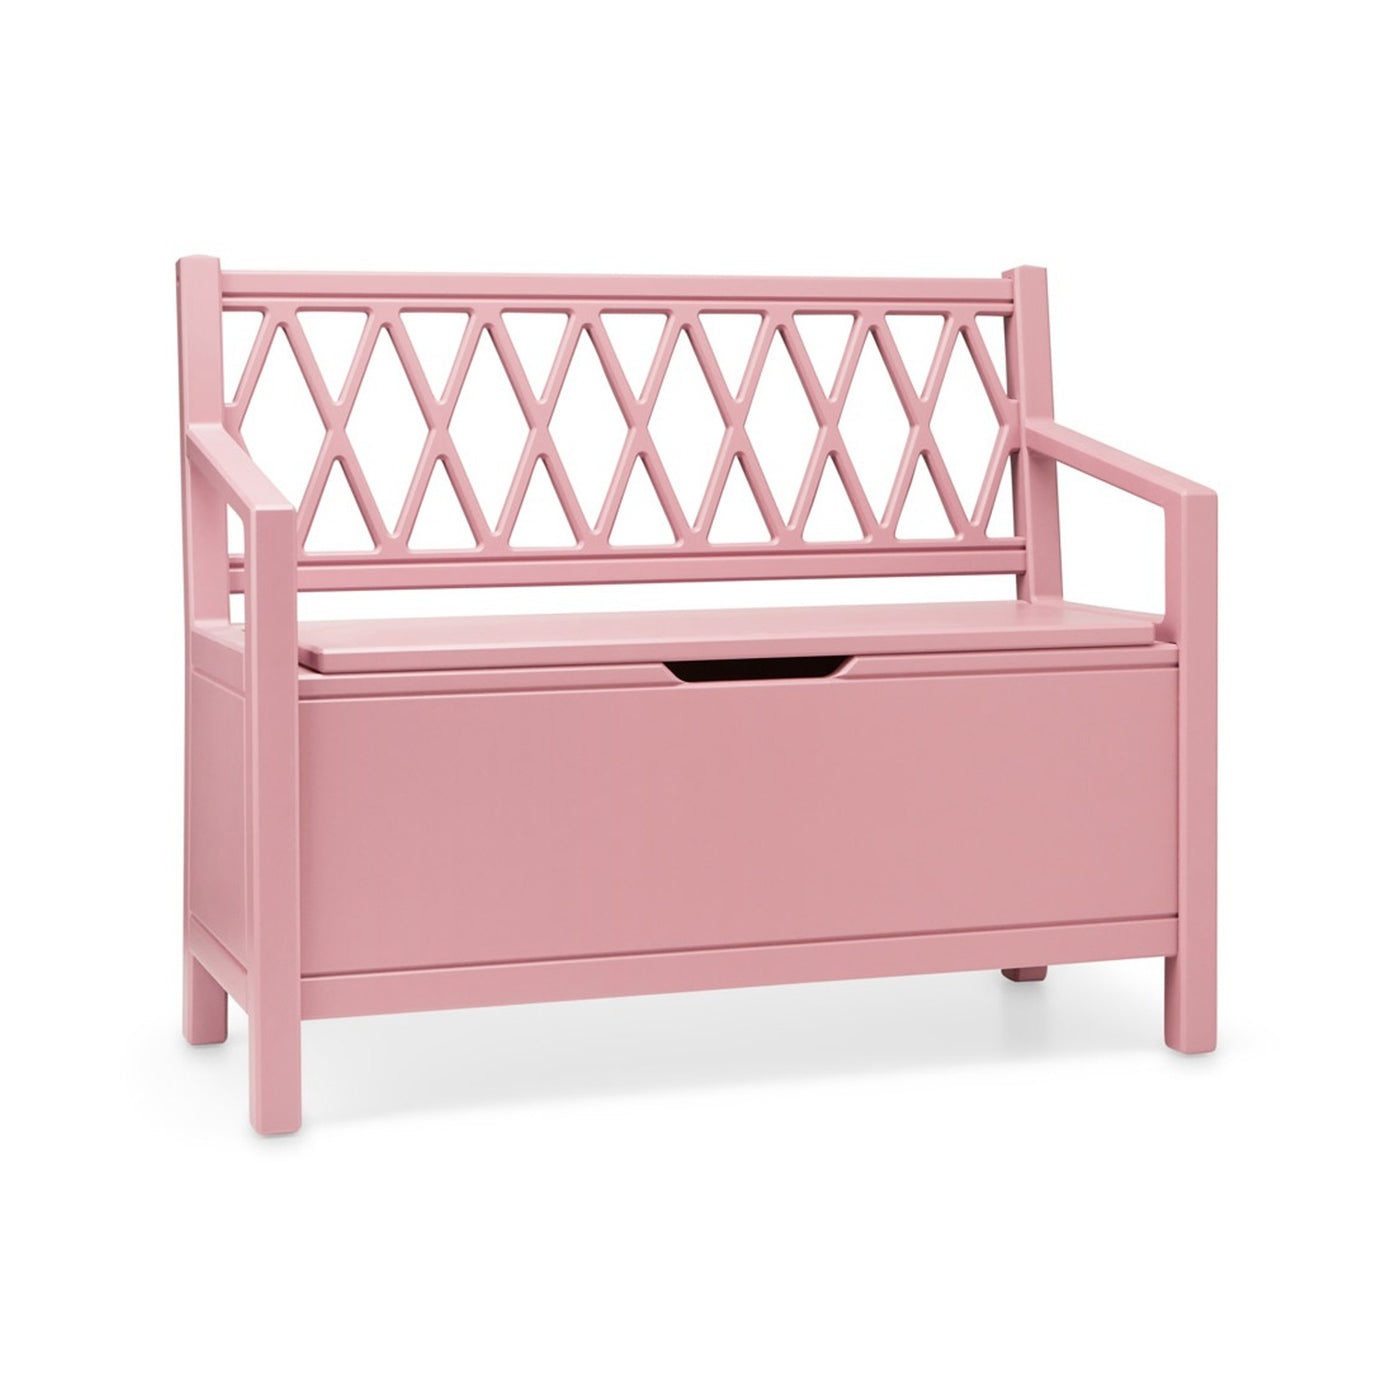 Harlequin Storage Bench - Berry